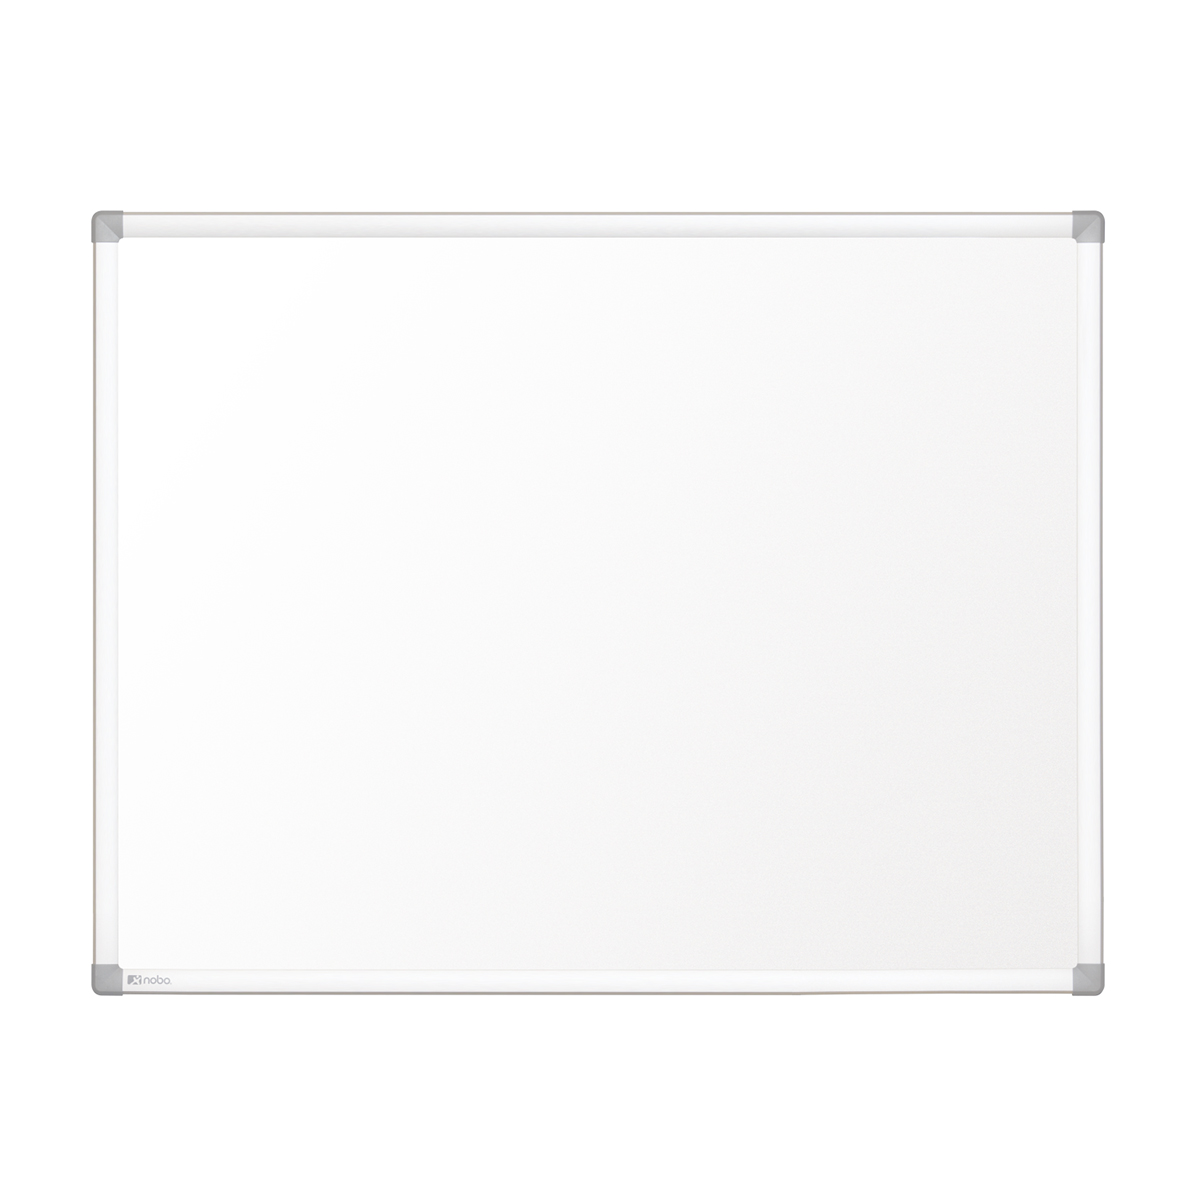 Nobo 1905222 Prestige Enamel Magnetic Whiteboard 1800 x 900mm